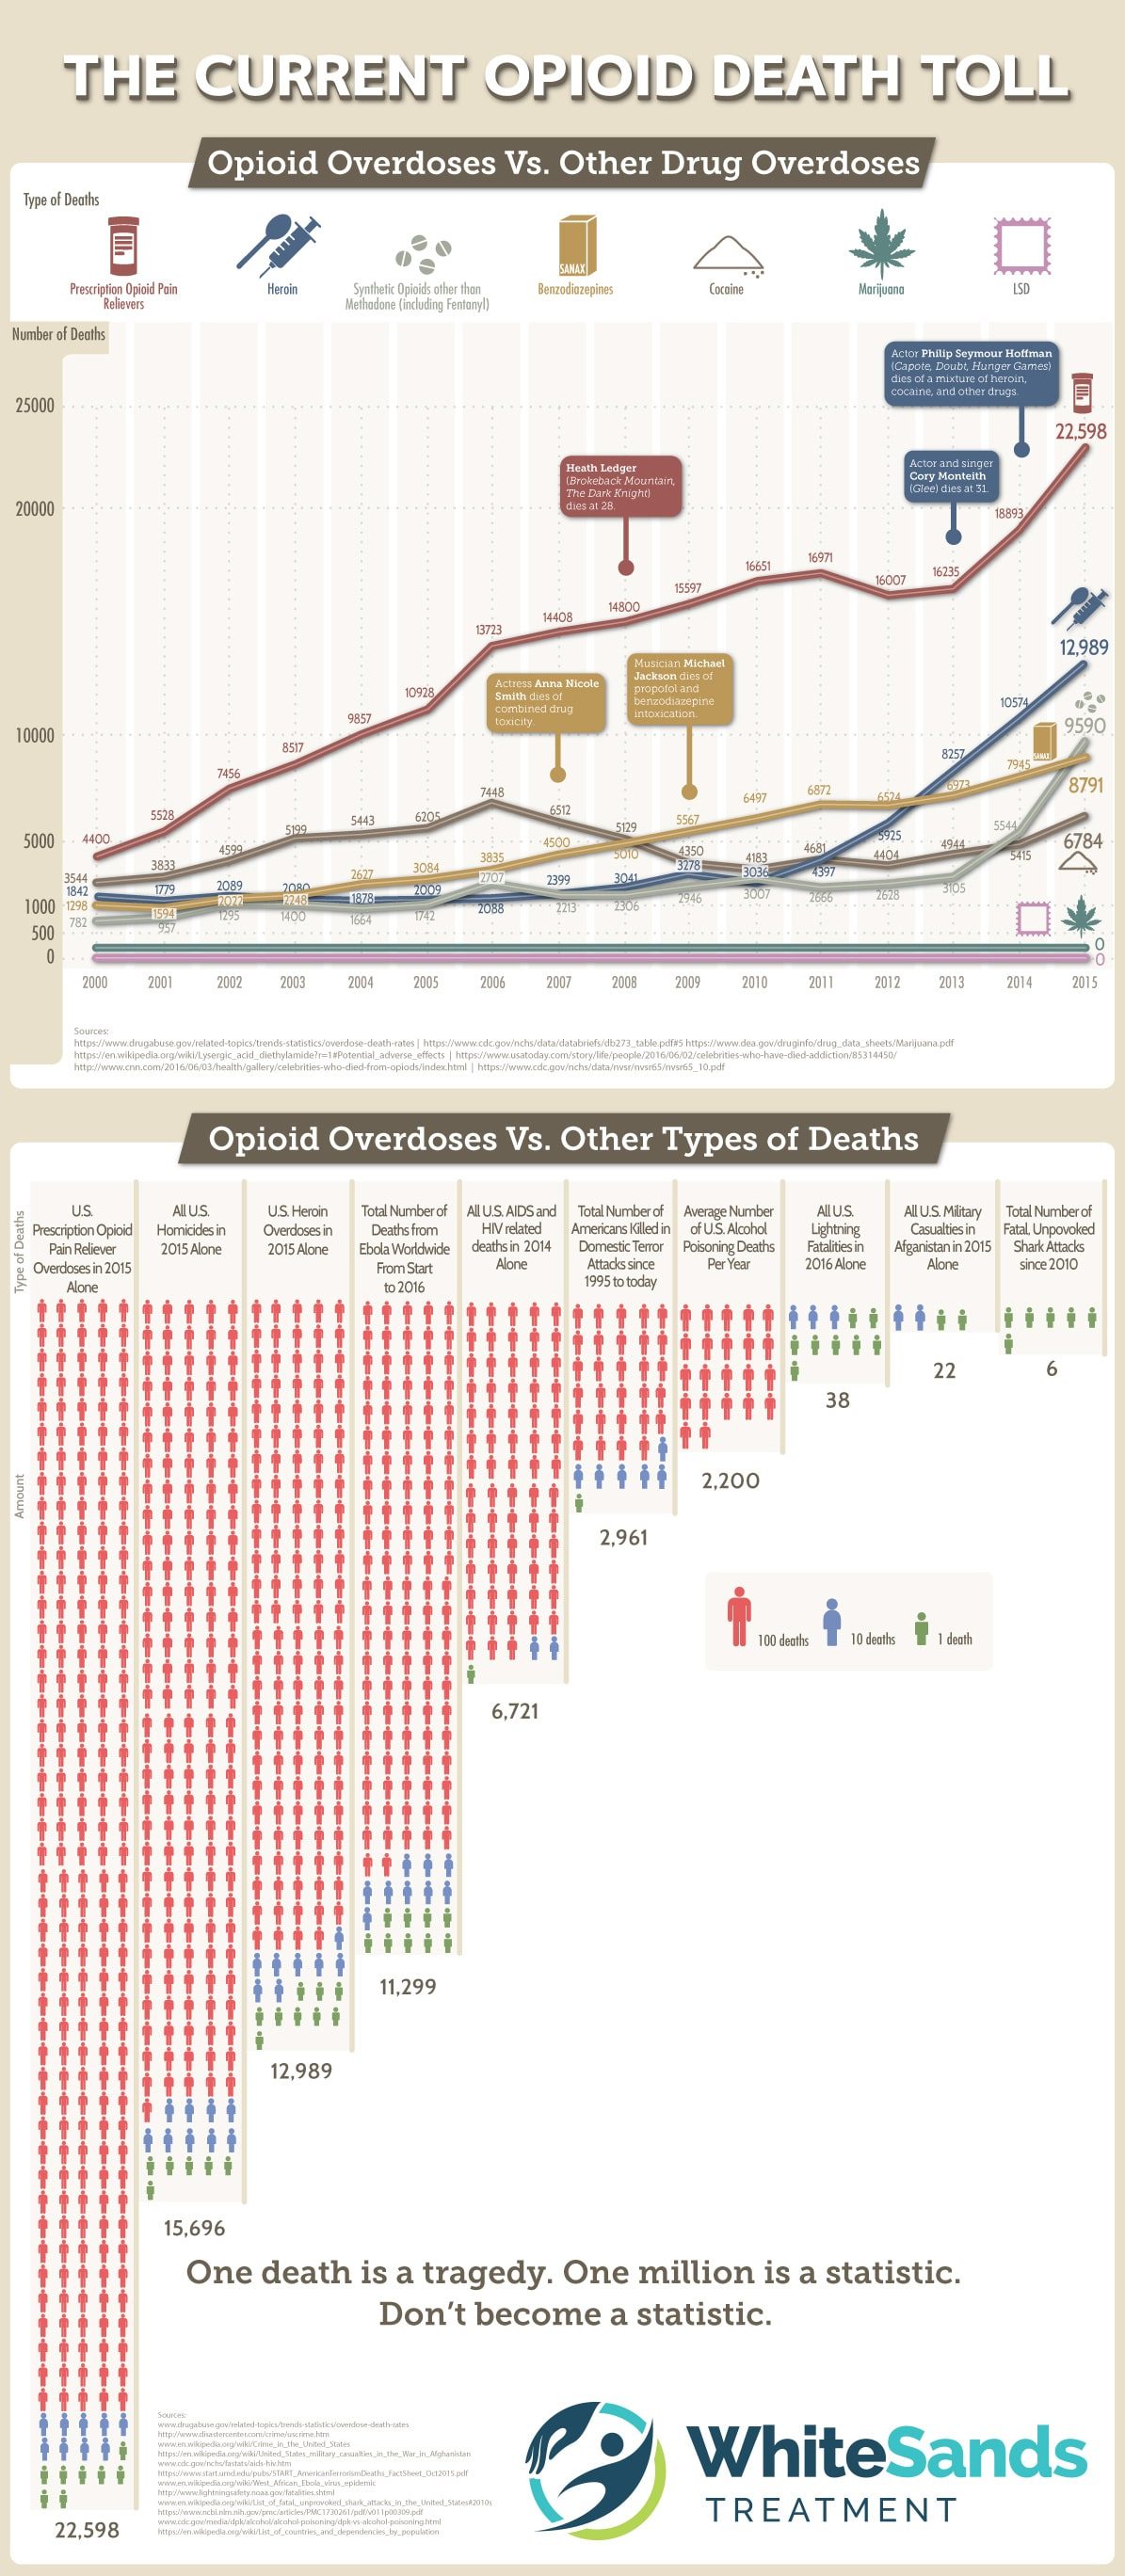 Current Opioid Death Toll Infographic